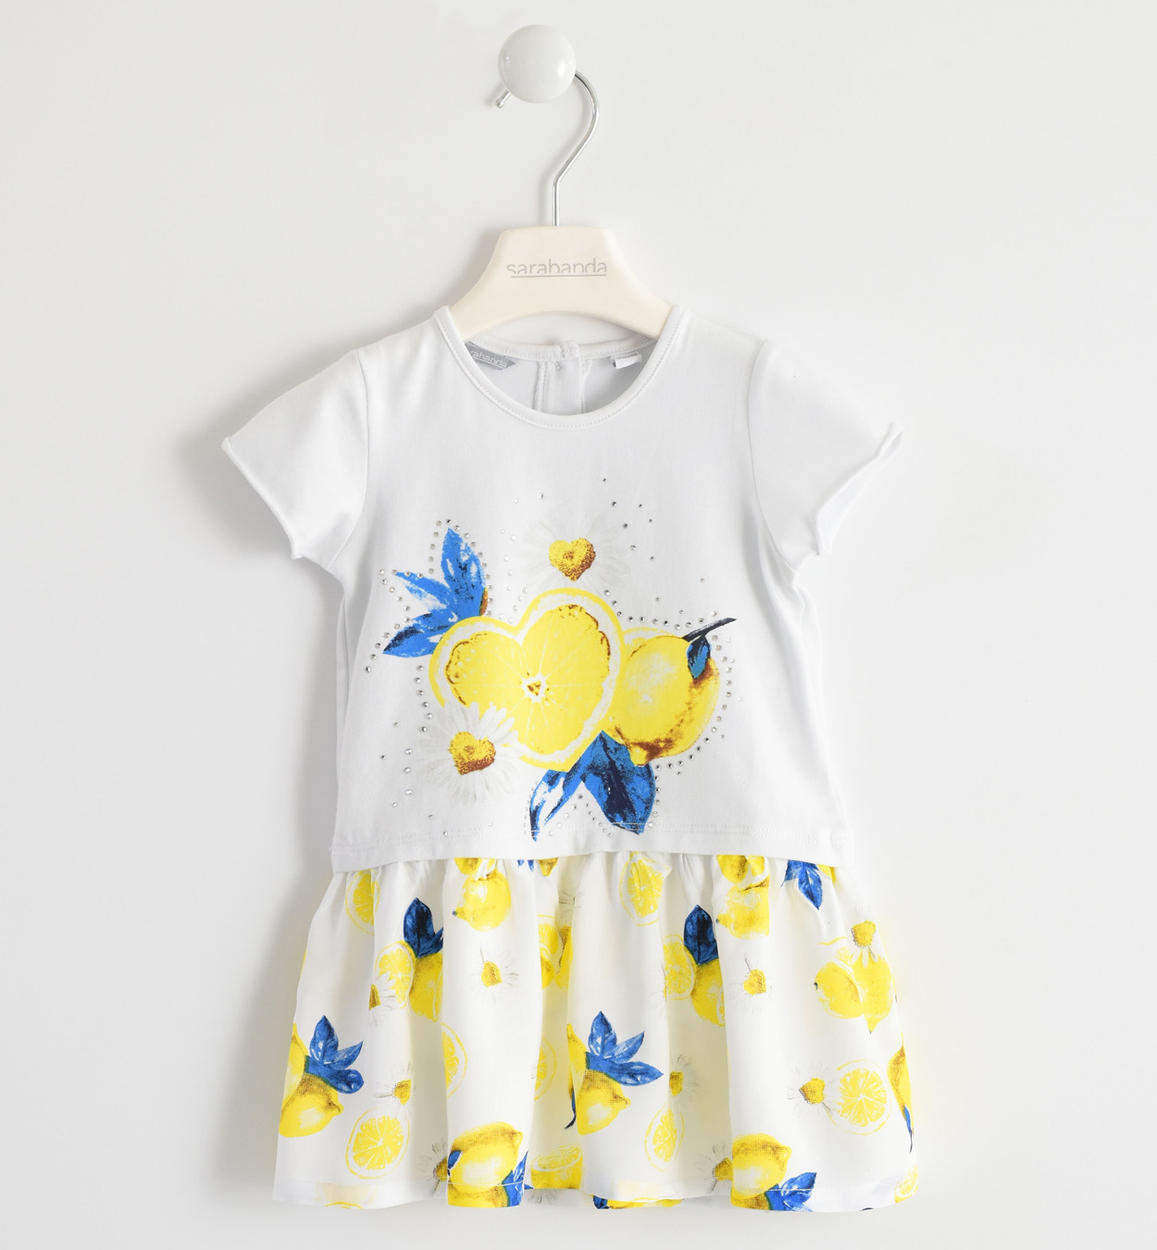 f8b6f48fd77 Short-sleeved dress with lemon pattern for baby girls from 6 months to 7  years Sarabanda